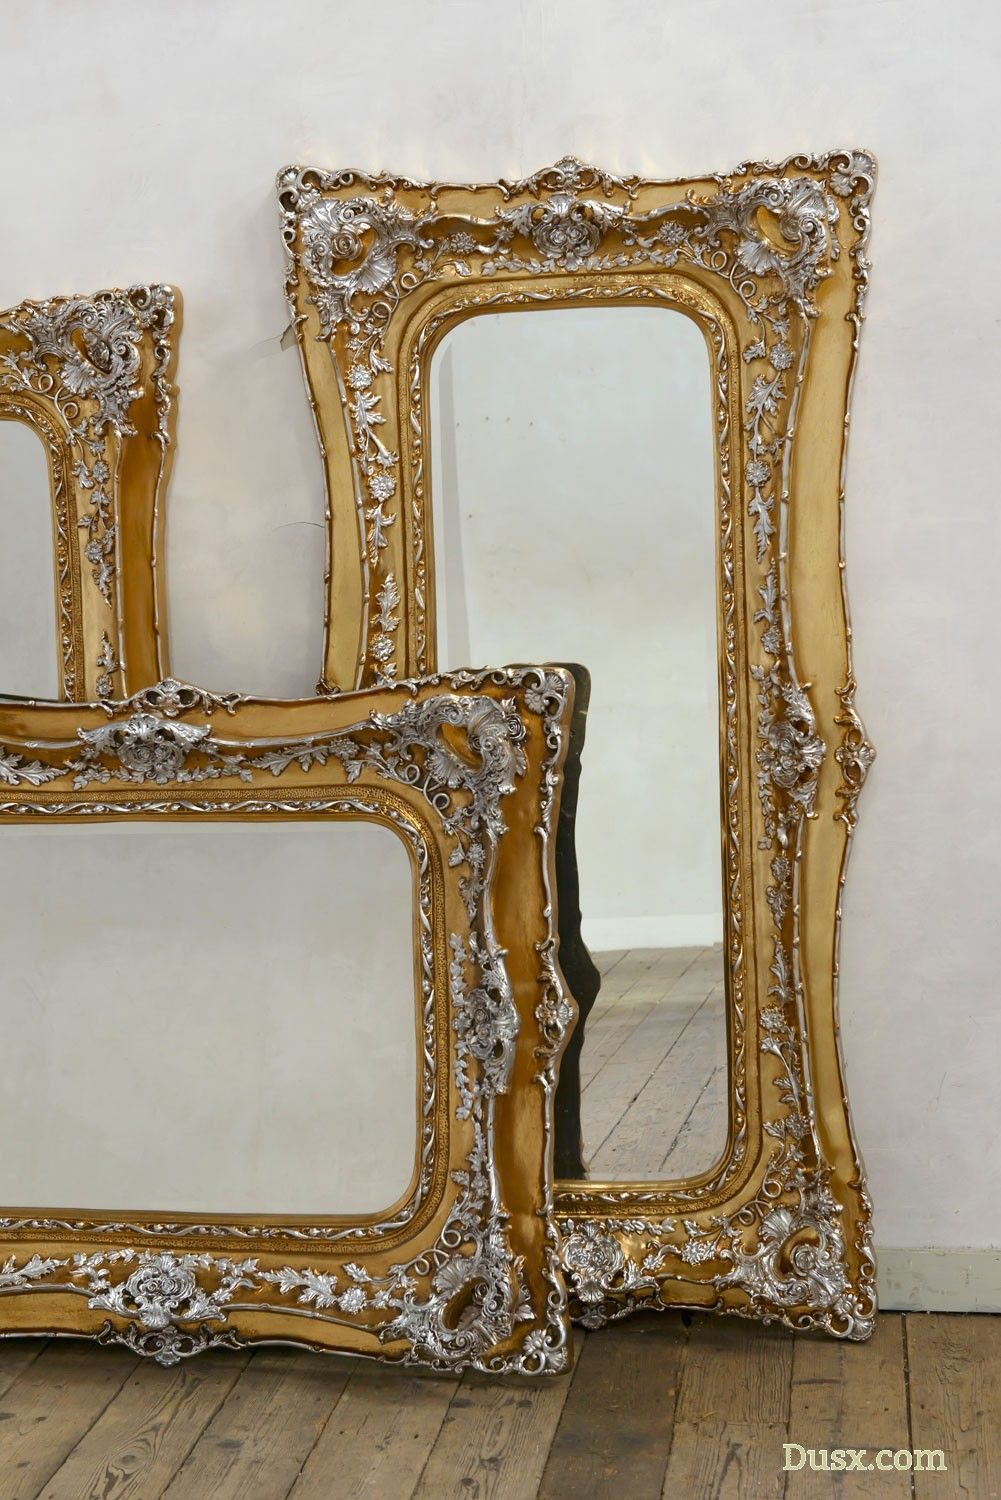 963adcaf47bfd Rosetti Baroque Gold and Silver Gilt Leaf Bevelled Mirror - Larger   Floor  Standing Mirrors over 150cm - Type of Mirror - Mirrors Dusx - French Mirrors